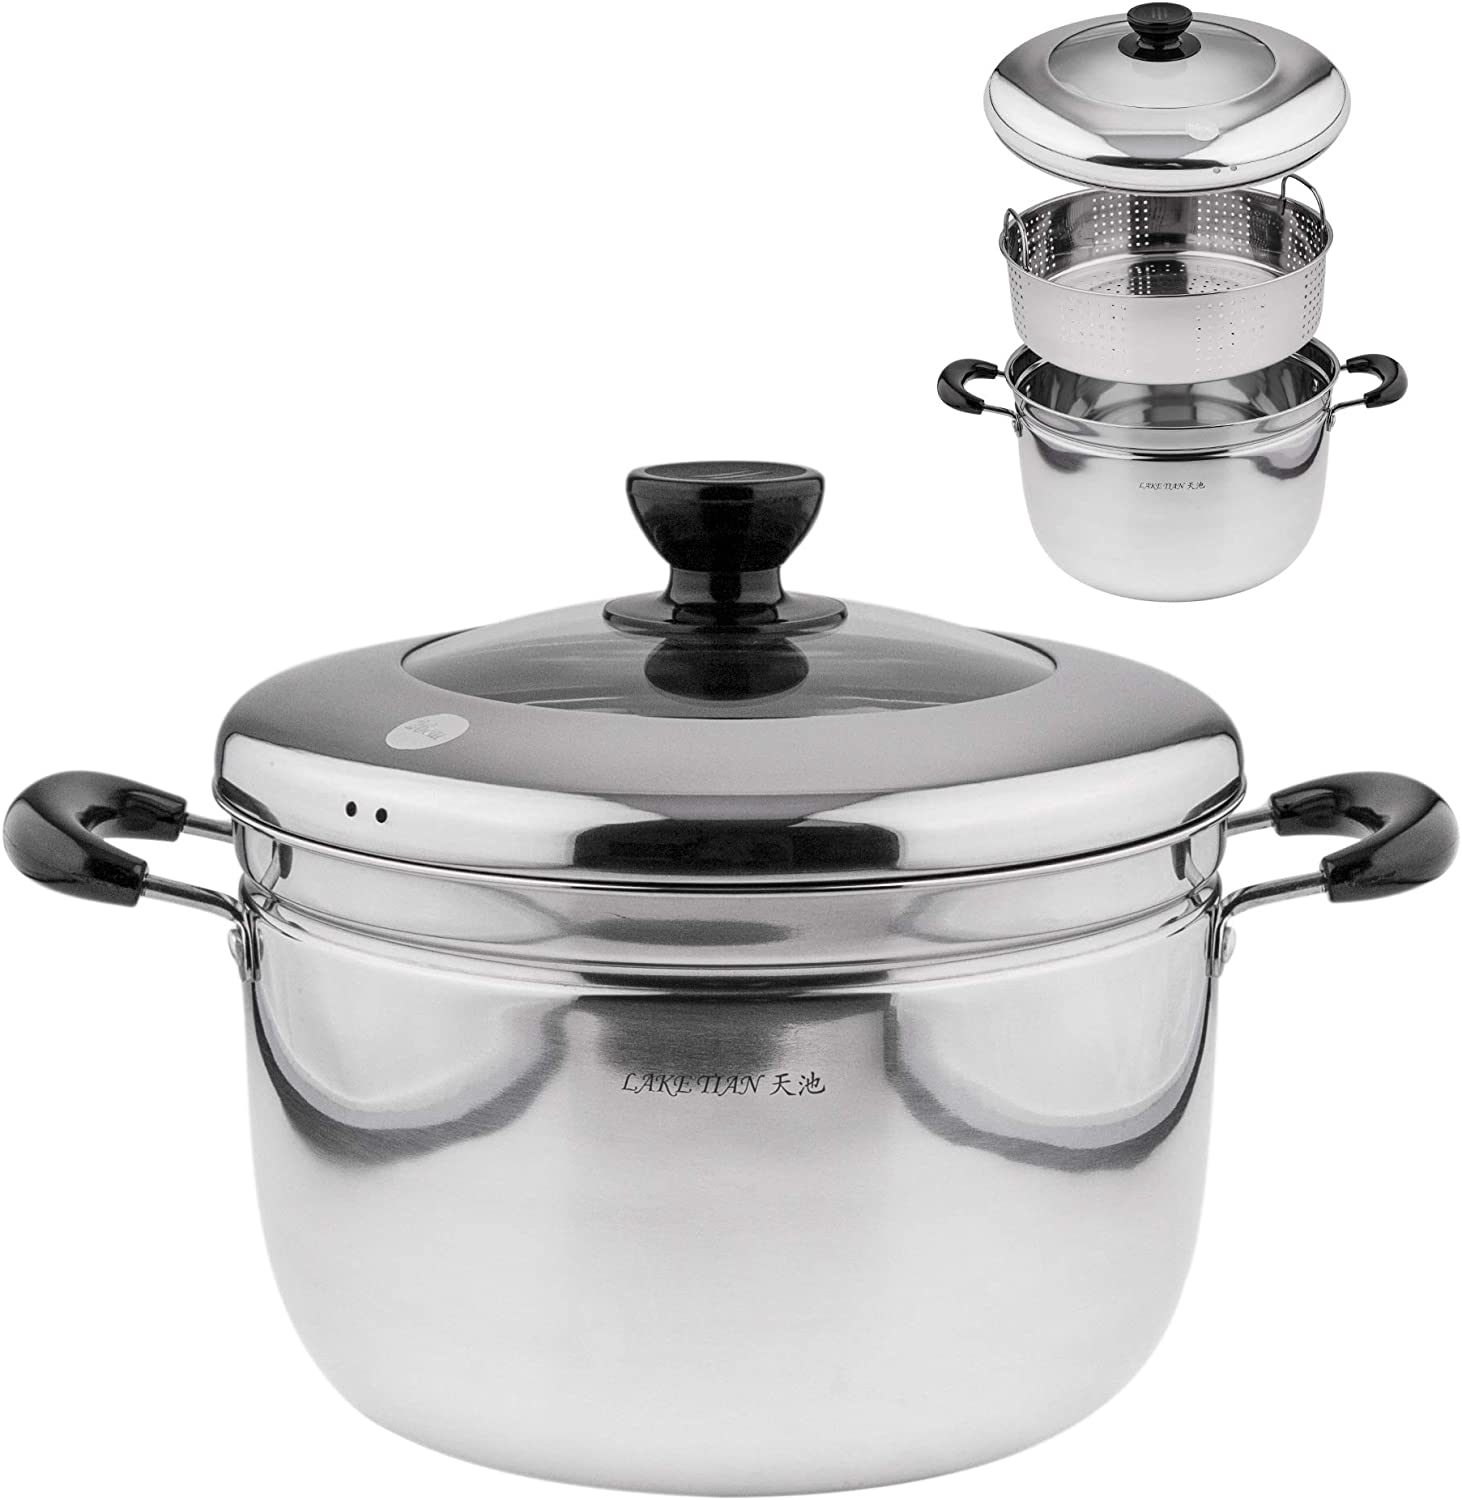 Single Stainless Steel Steamer Pot Cookware Pot, Vegetable Steamer with Insert Steamer Basket, Great Steamer For Cooking Food, Tempered Glass Lid, Dishwasher Safe By Lake Tian (26cm/10.2in)